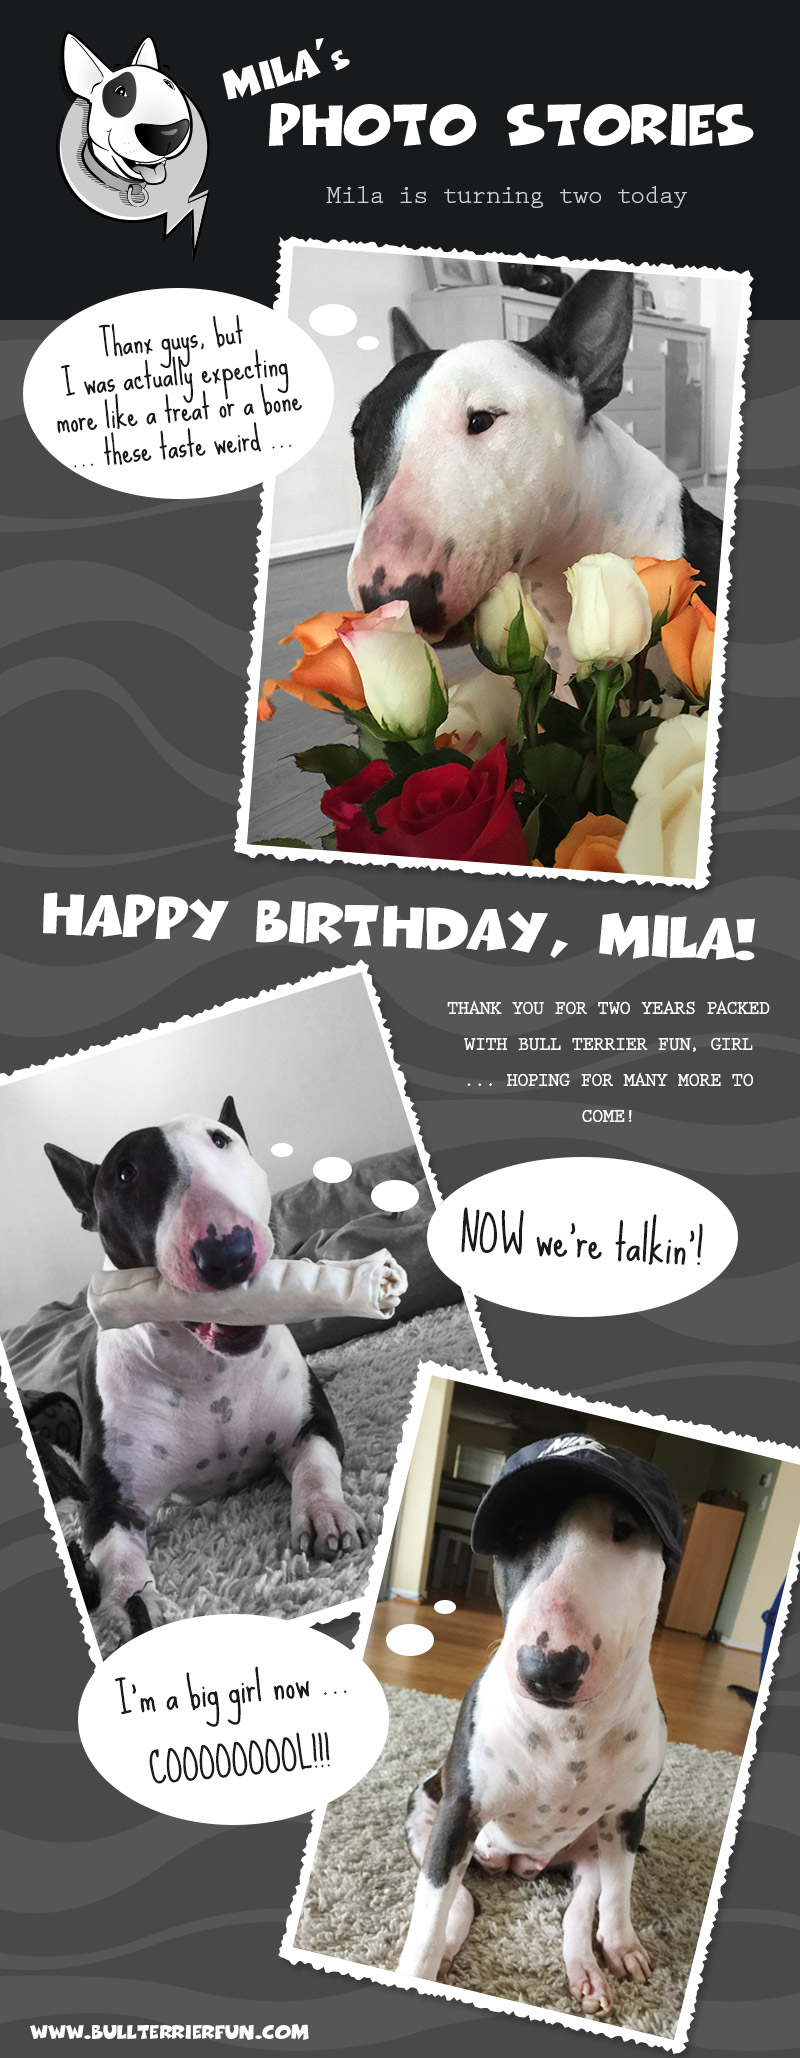 Mila is turning two today